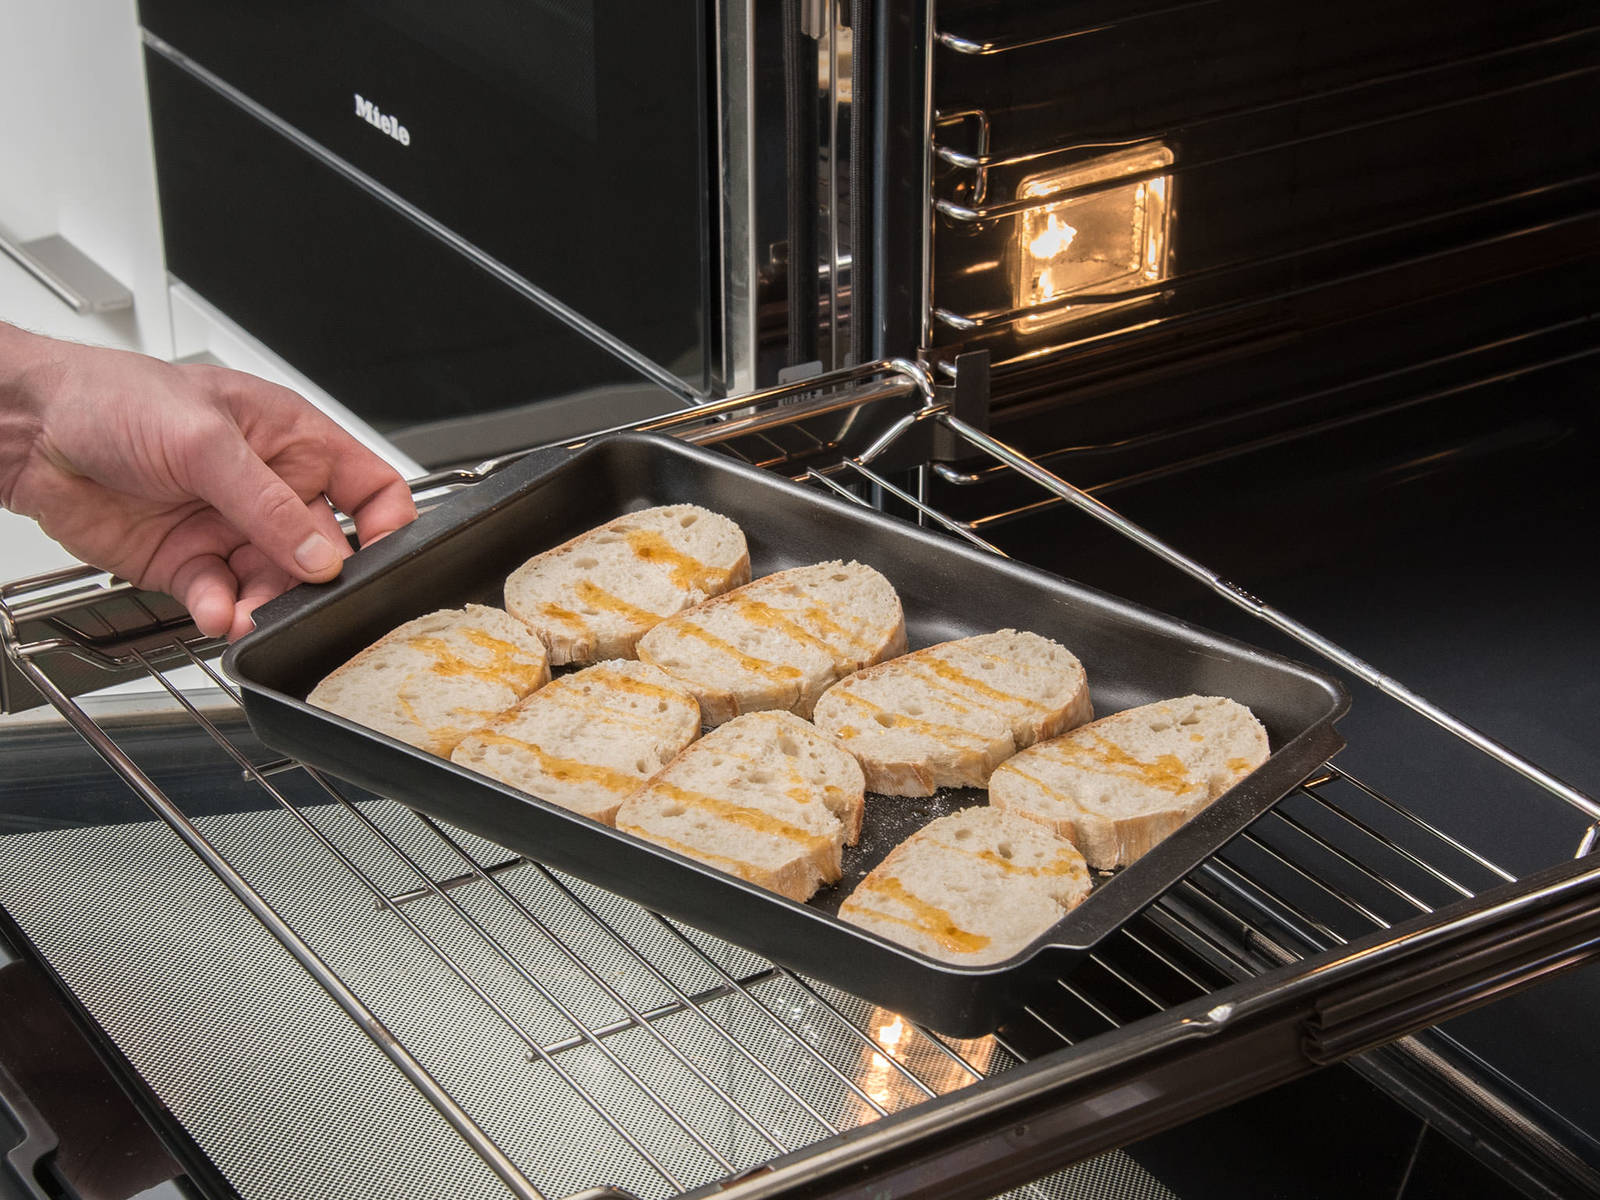 Pre-heat oven to 210°C/410°F. Slice bread and transfer onto a baking sheet. Toast in the oven for approx. 8 – 10 min.